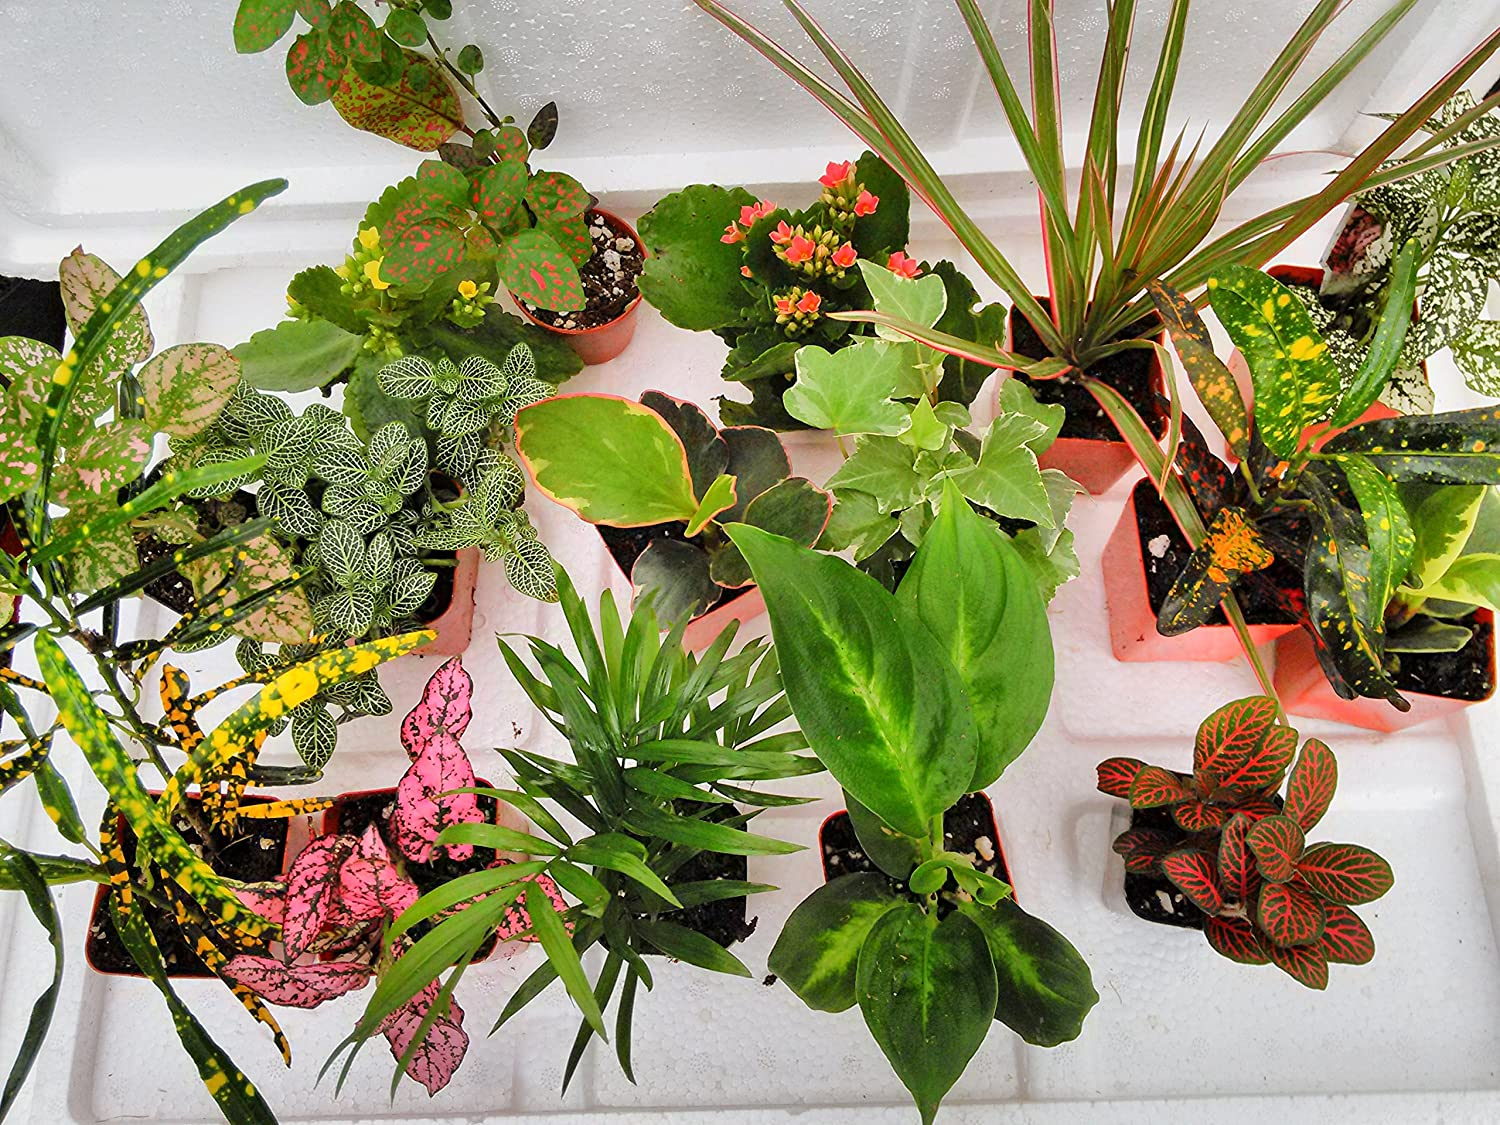 Terrarium Fairy Garden Plants – 8 Plants in 2.5 Is Approximately 4 to 6 Inches Height of the Plant